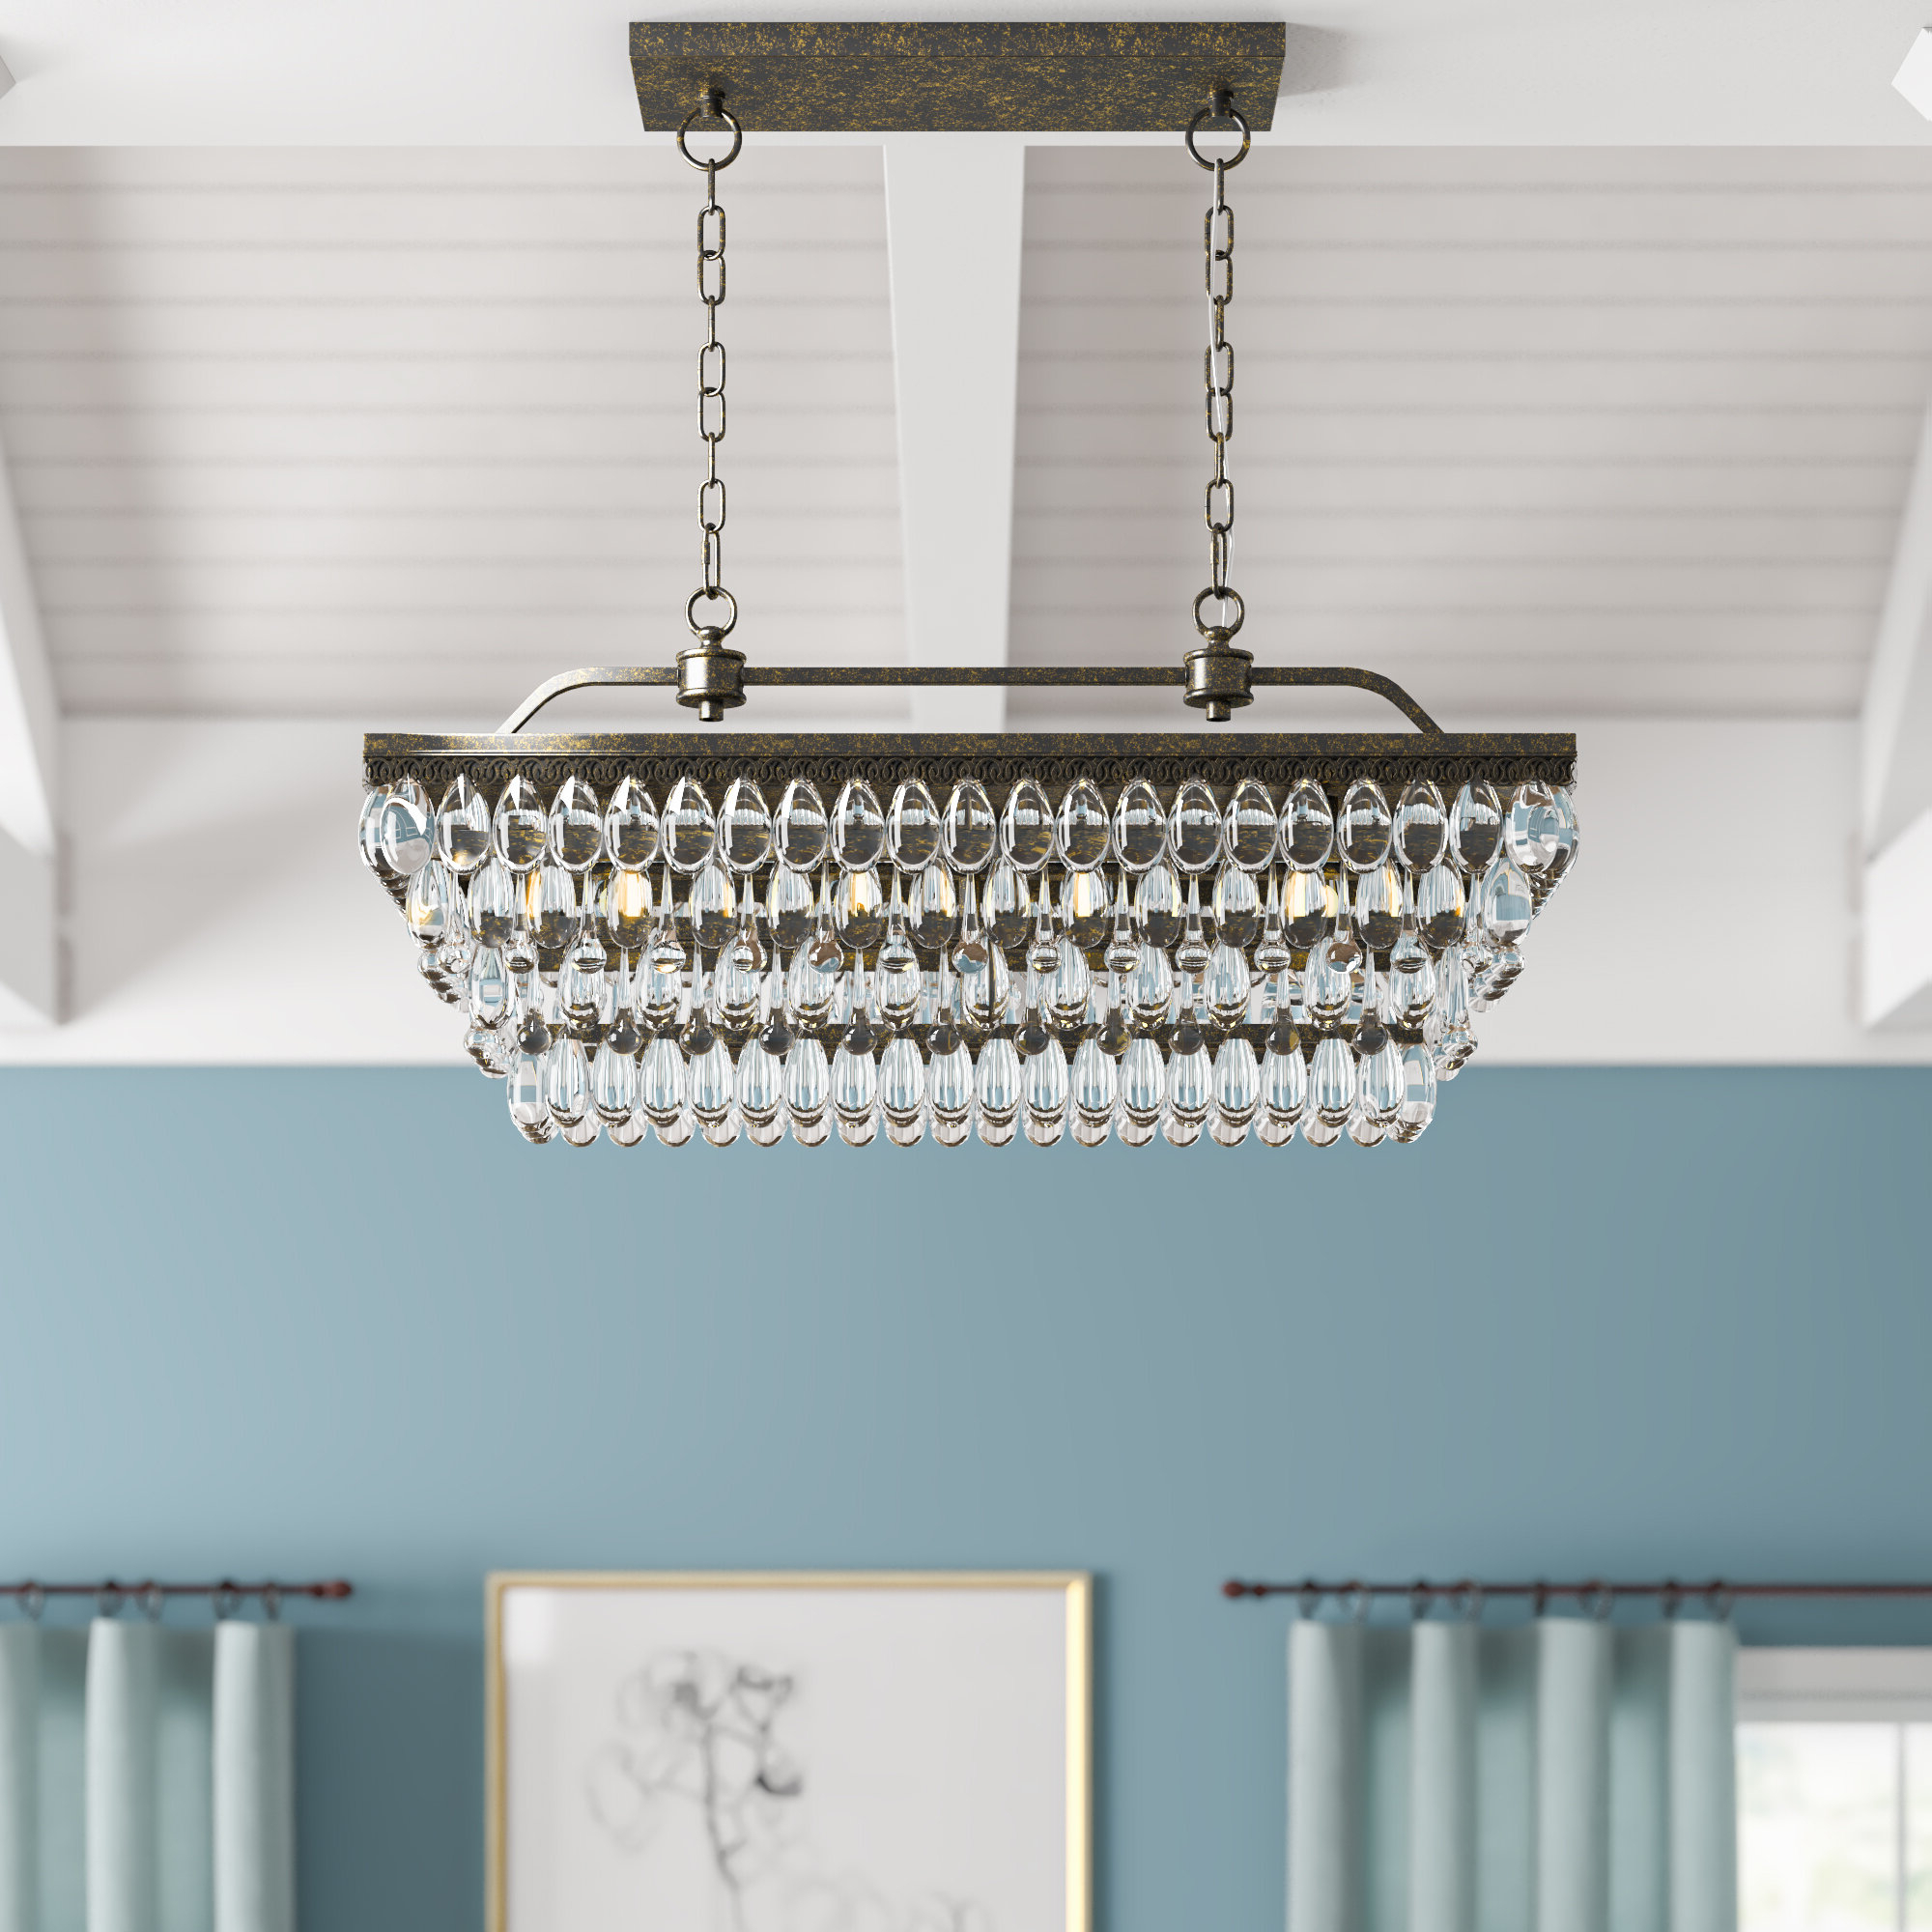 Whitten 4 Light Crystal Chandelier With Regard To Popular Whitten 4 Light Crystal Chandeliers (View 13 of 20)